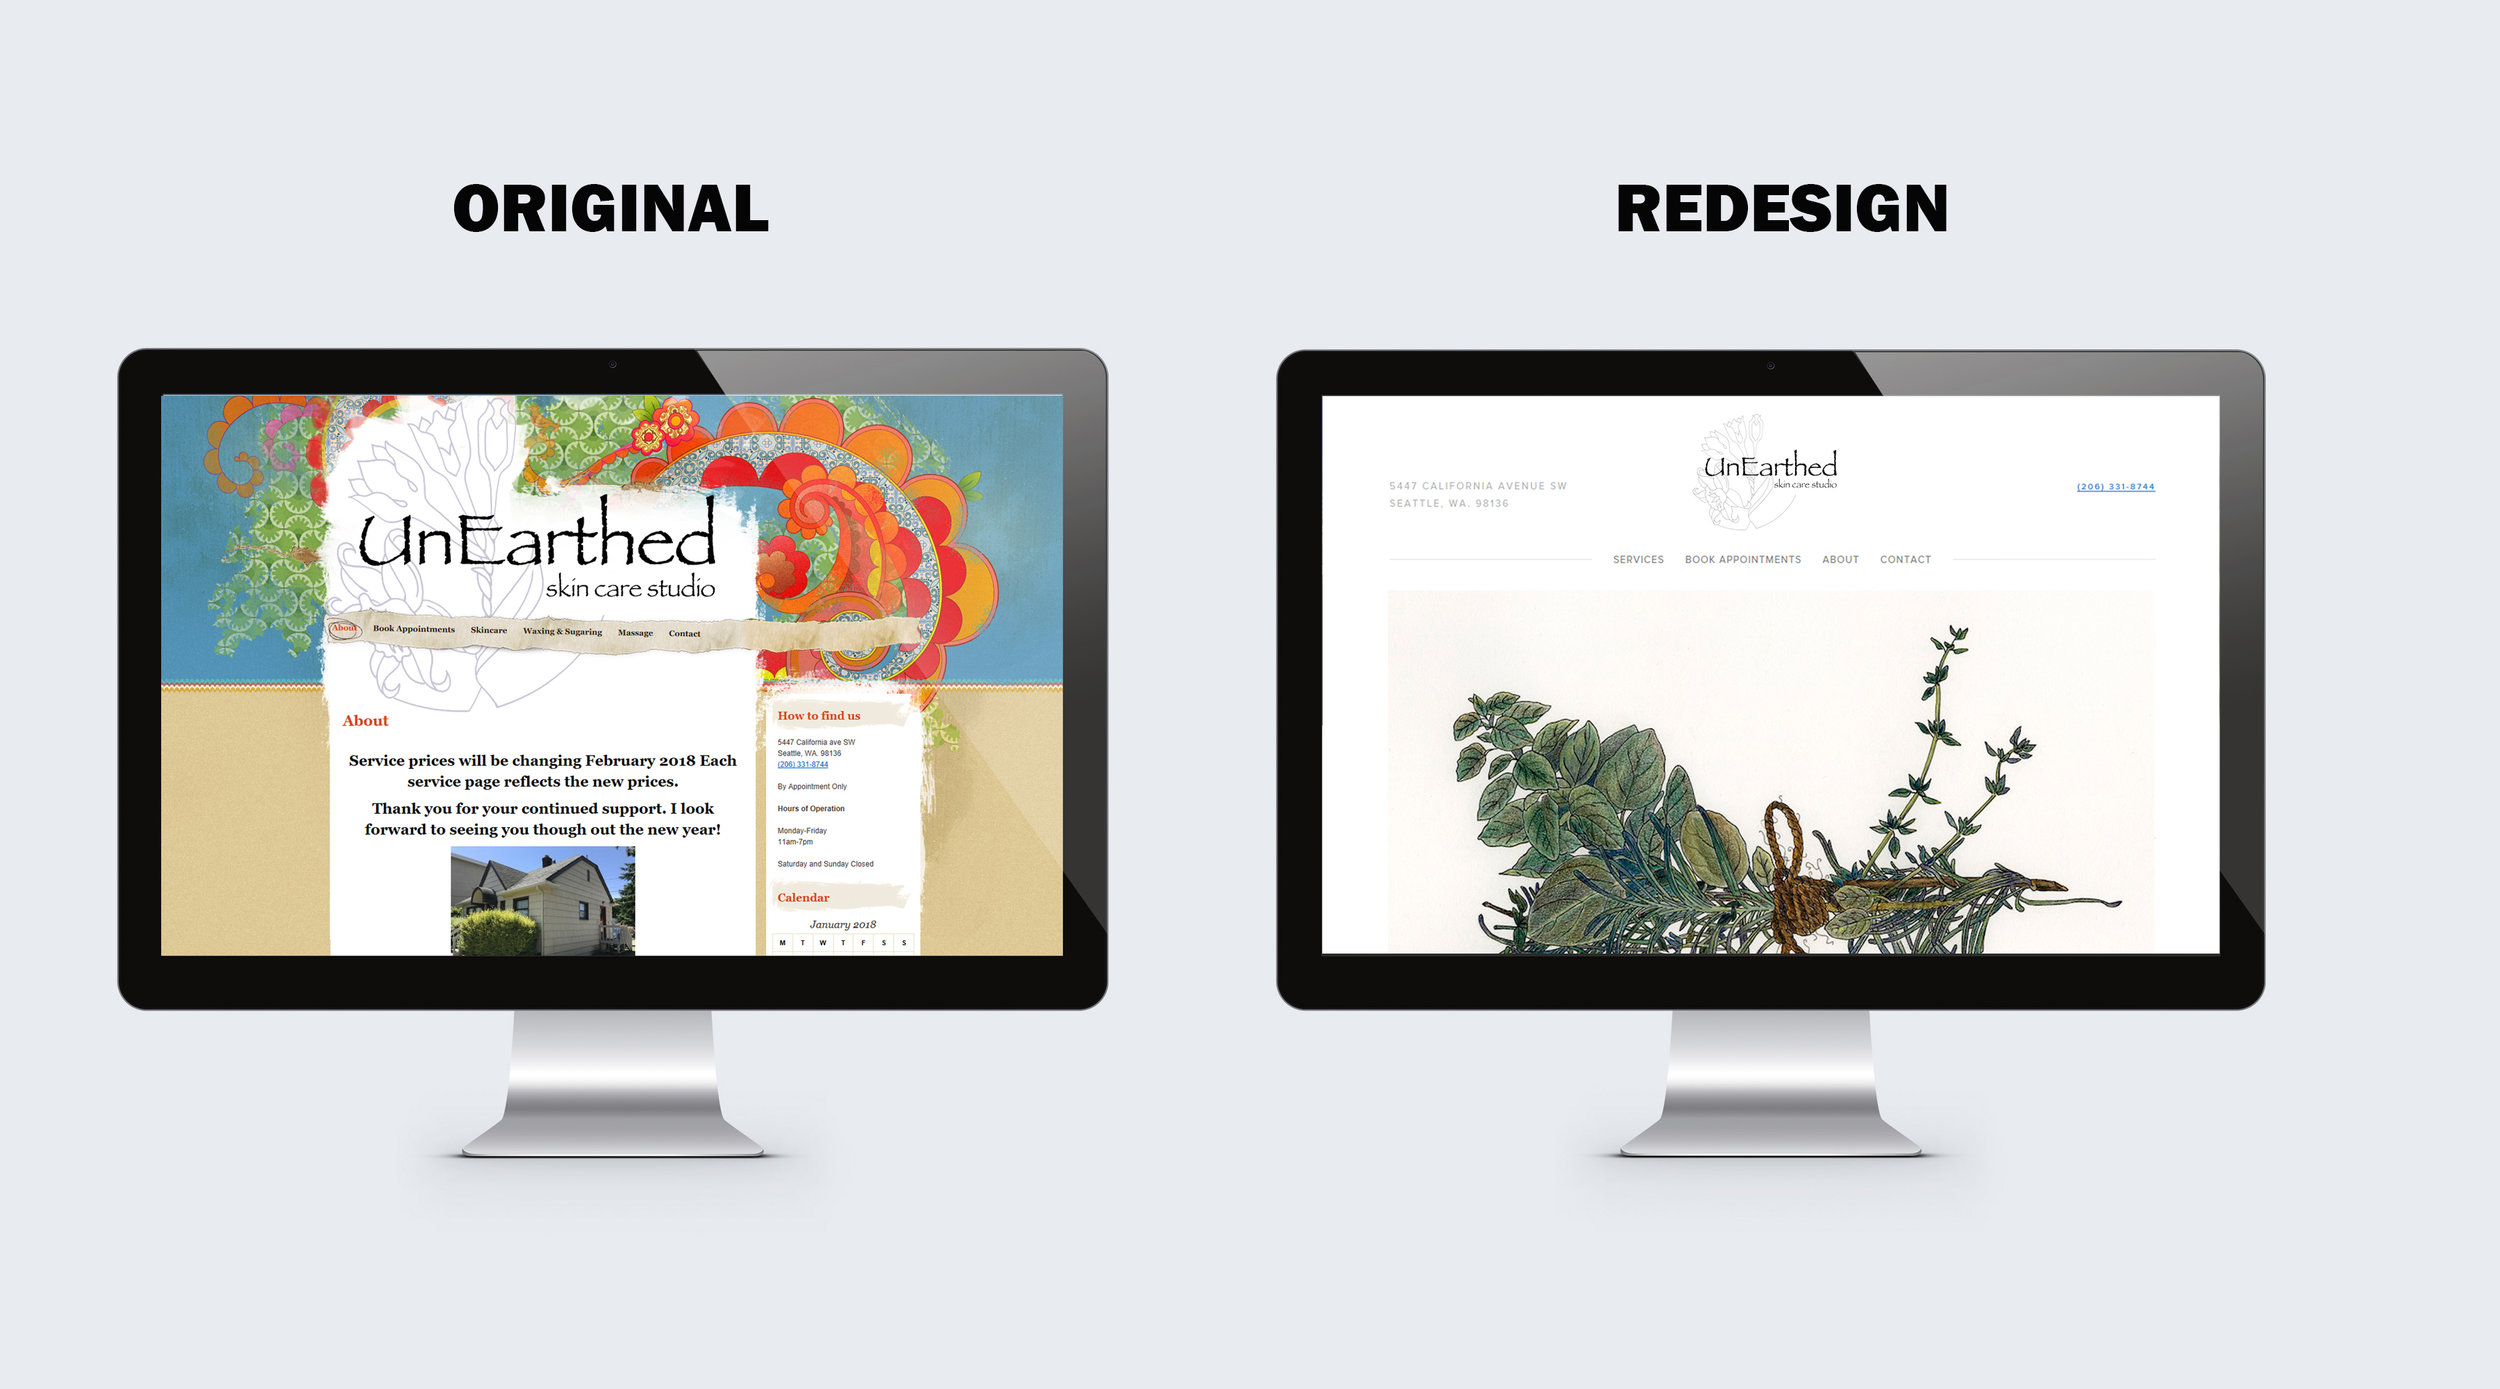 unearthed-website-before-and-after.jpg